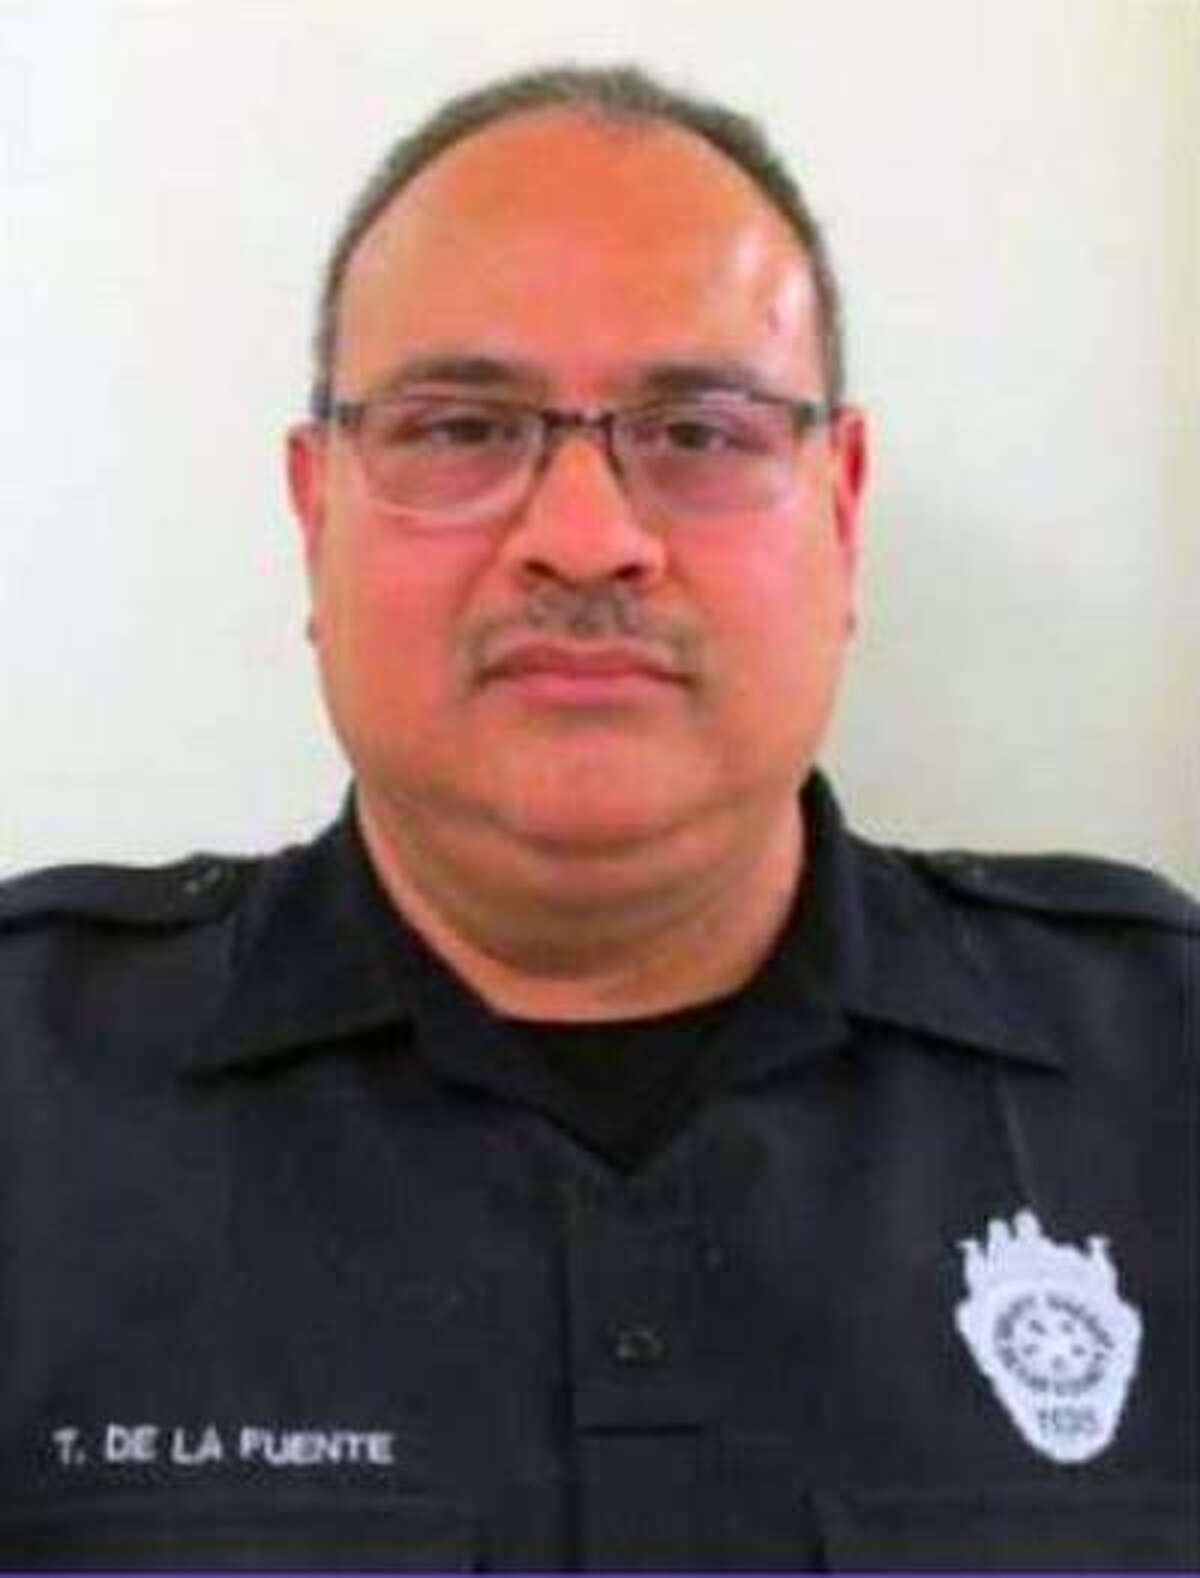 Detention deputy Timothy De La Fuente with the Bexar County Sheriff's Office who was found dead Thursday had recently tested positive for the coronavirus, according to Bexar County Judge Nelson Wolff. De La Fuente, a 27-year-veteran of the Sheriff's Office, was tested Tuesday for the highly contagious virus.